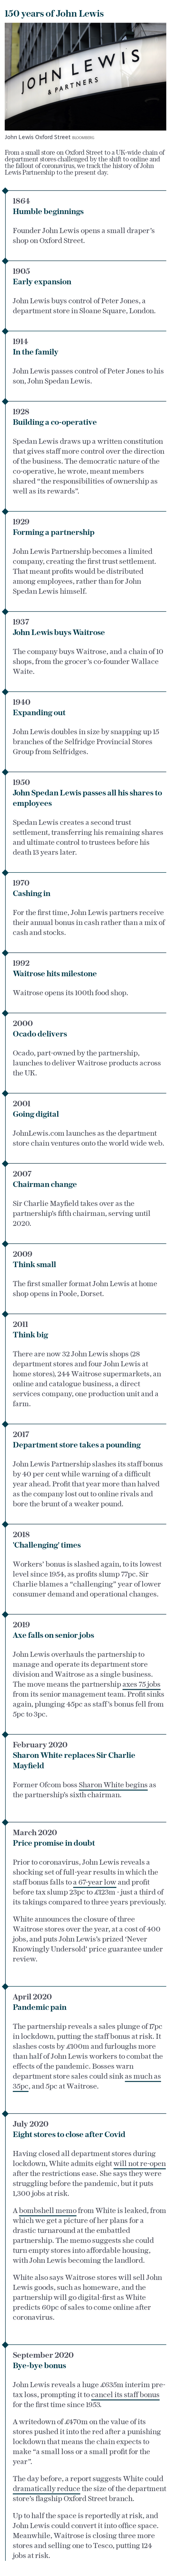 150 years of John Lewis